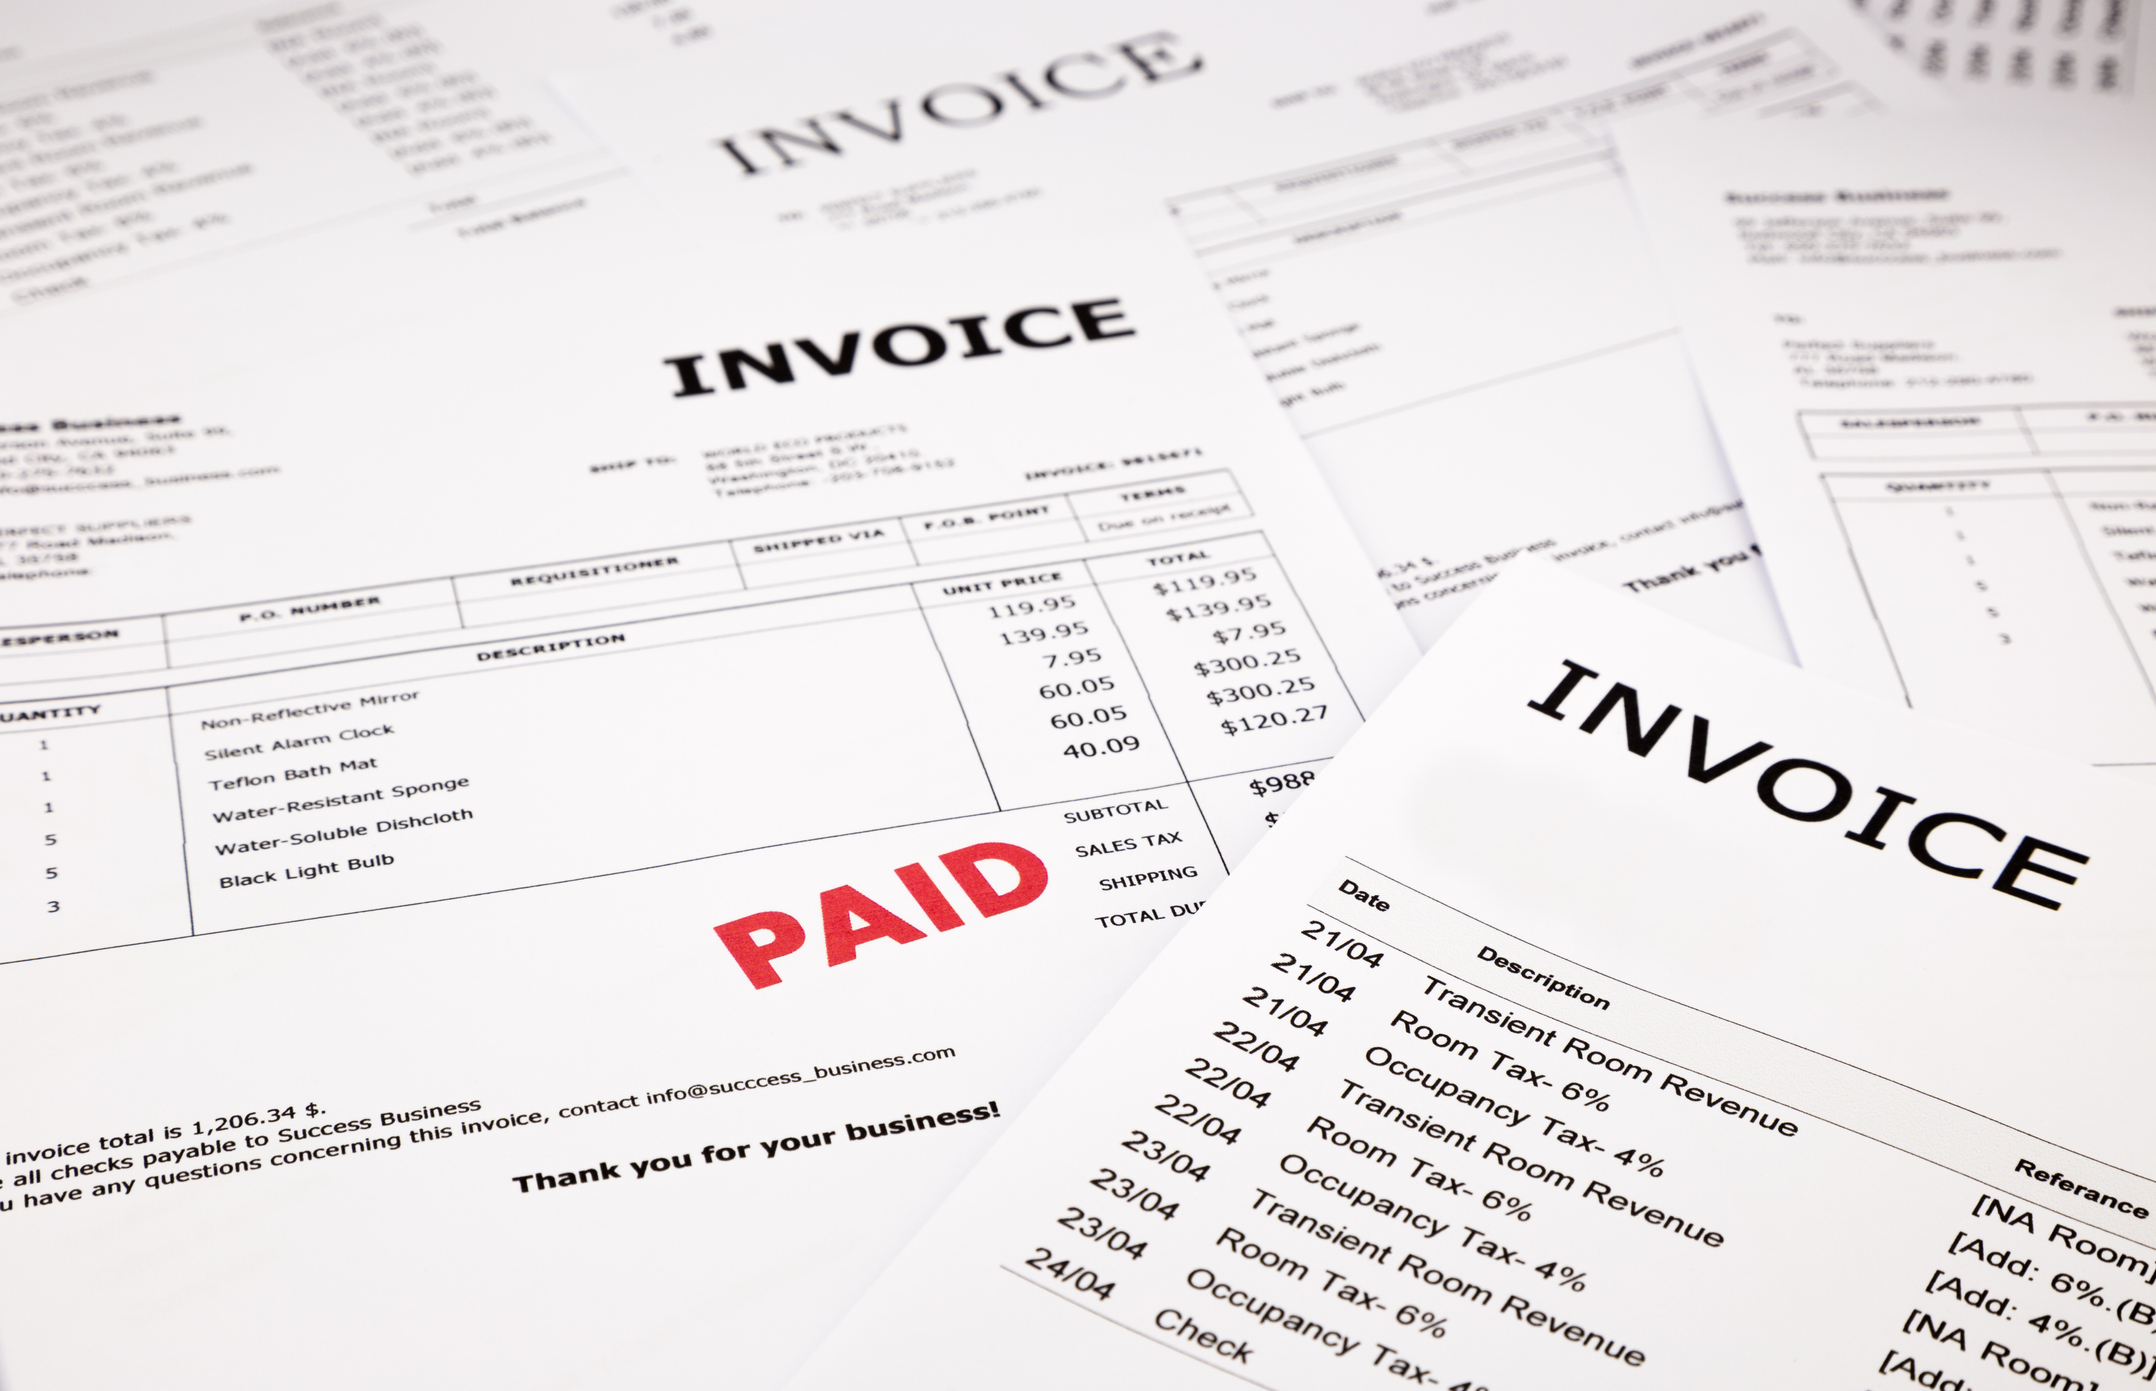 Invoice & Payment Processing  - Eliminate all paper invoices and reduce the amount of payments made each month.